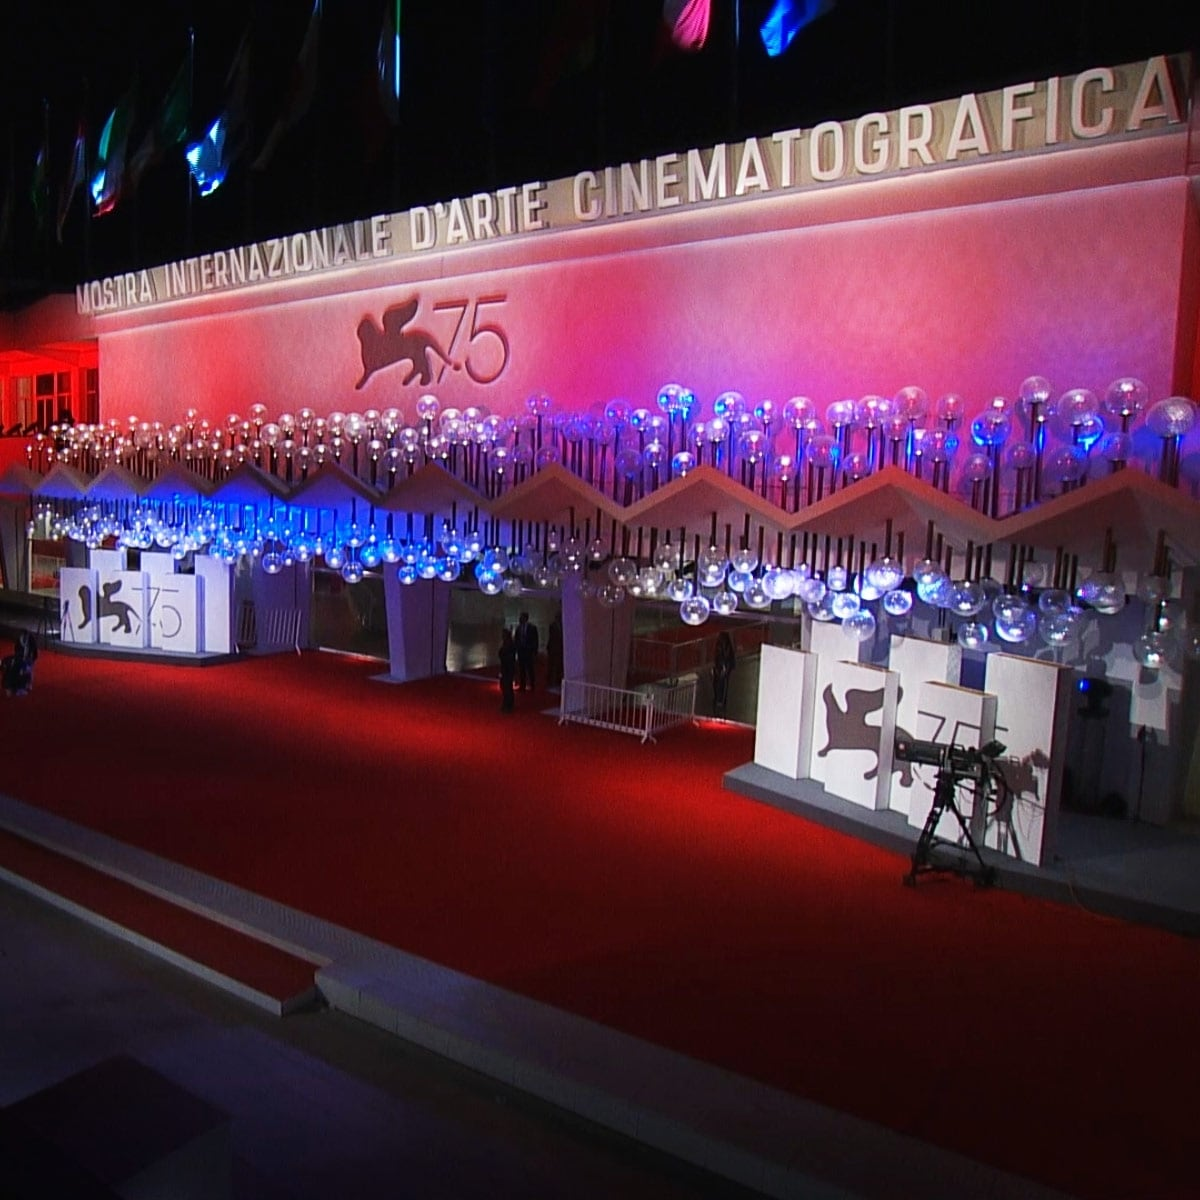 Jaeger-LeCoultre sponsors the 76th Venice International Film Festival